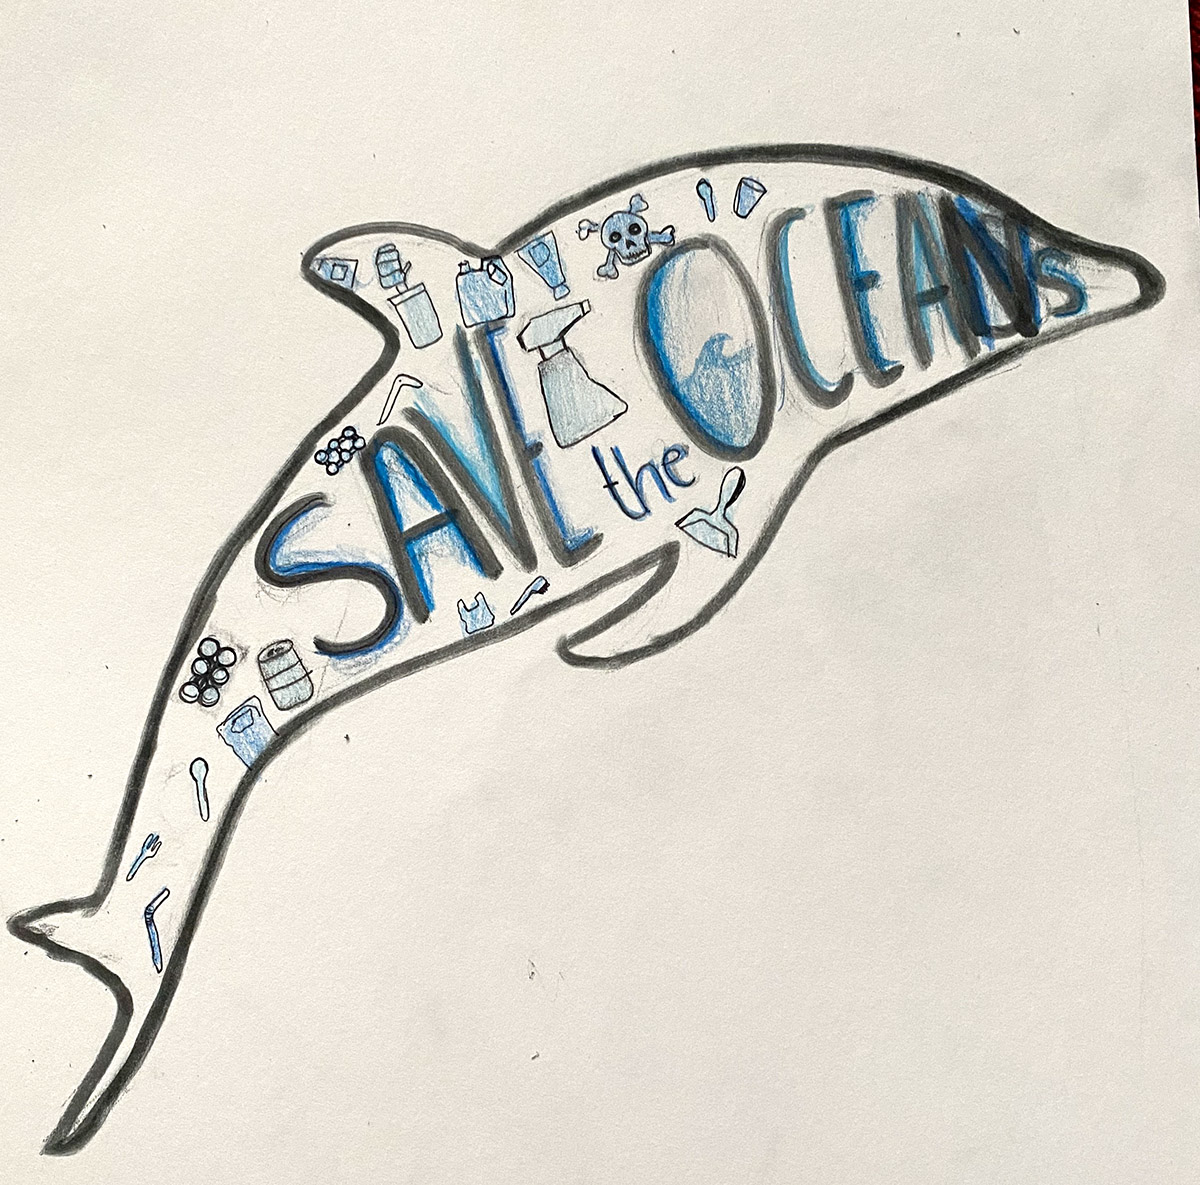 Outline of a dolphin with 'Save the oceans' written inside in decorative text, with small pictures of plastic objects around the text.